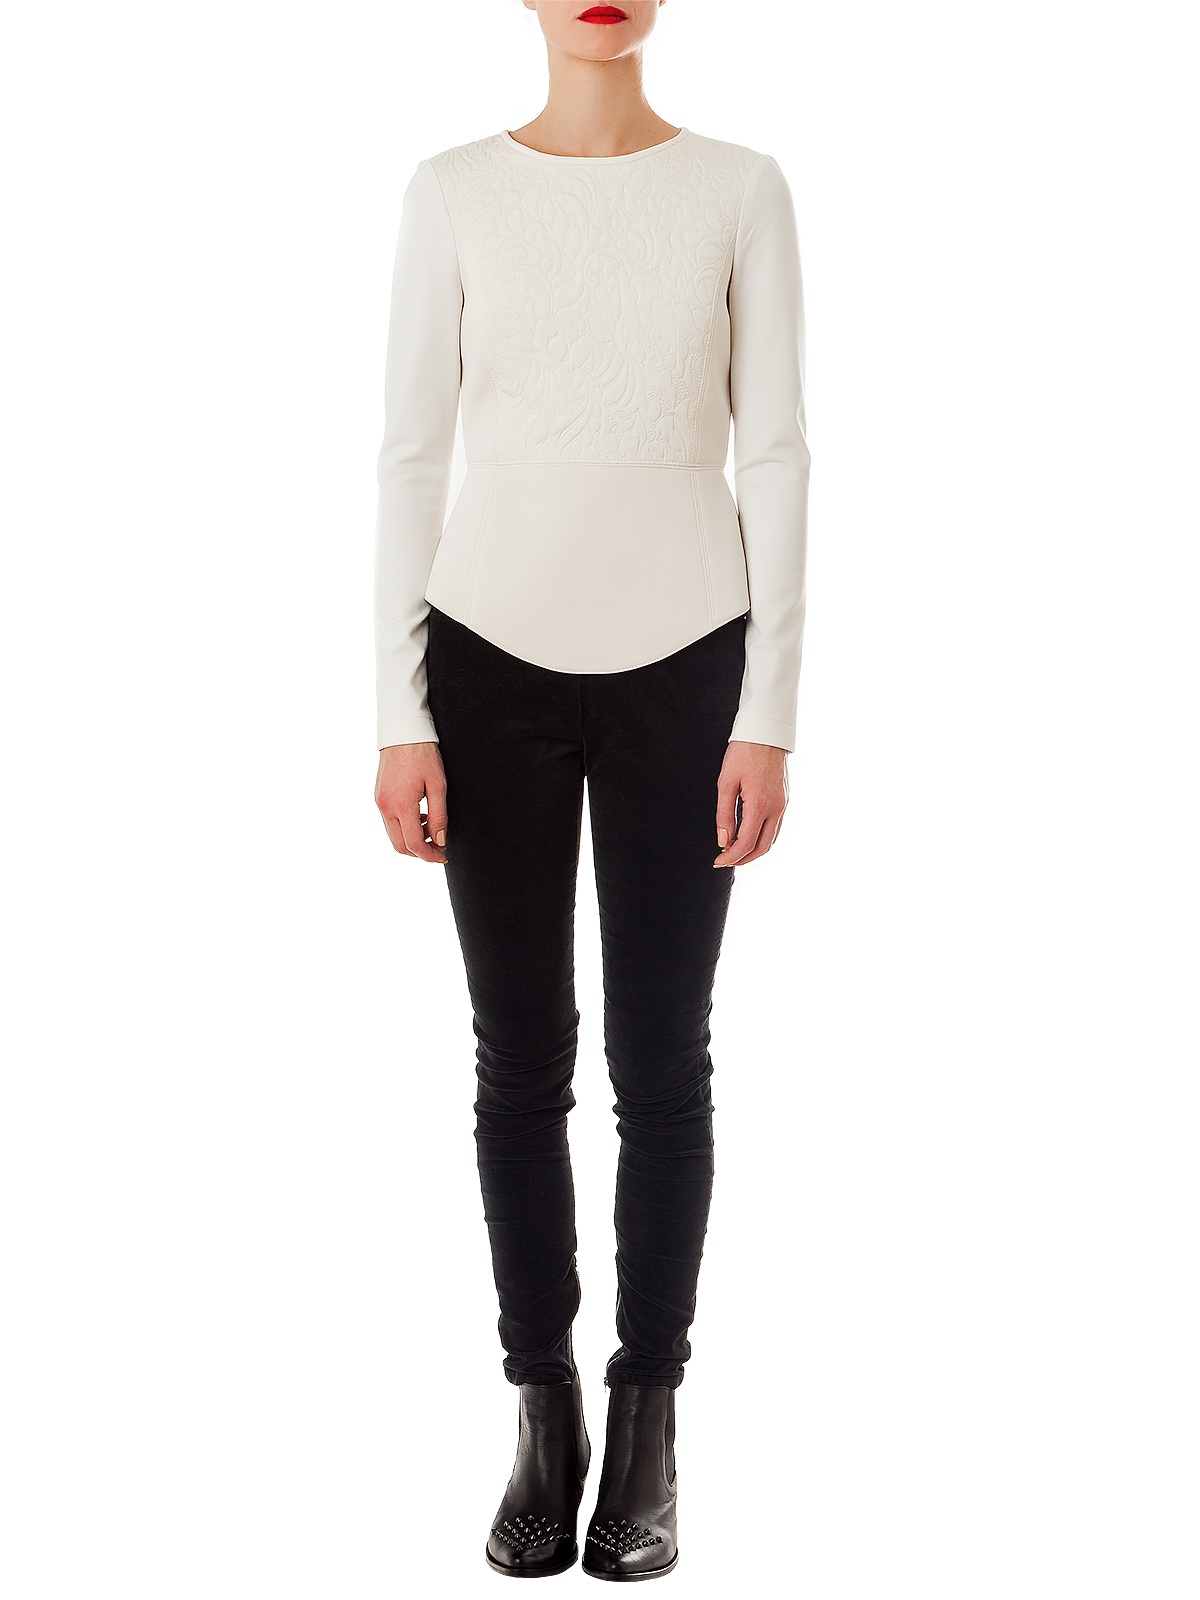 HONG KONG WHITE TOP | GIRISSIMA.COM - Collectible fashion to love and to last